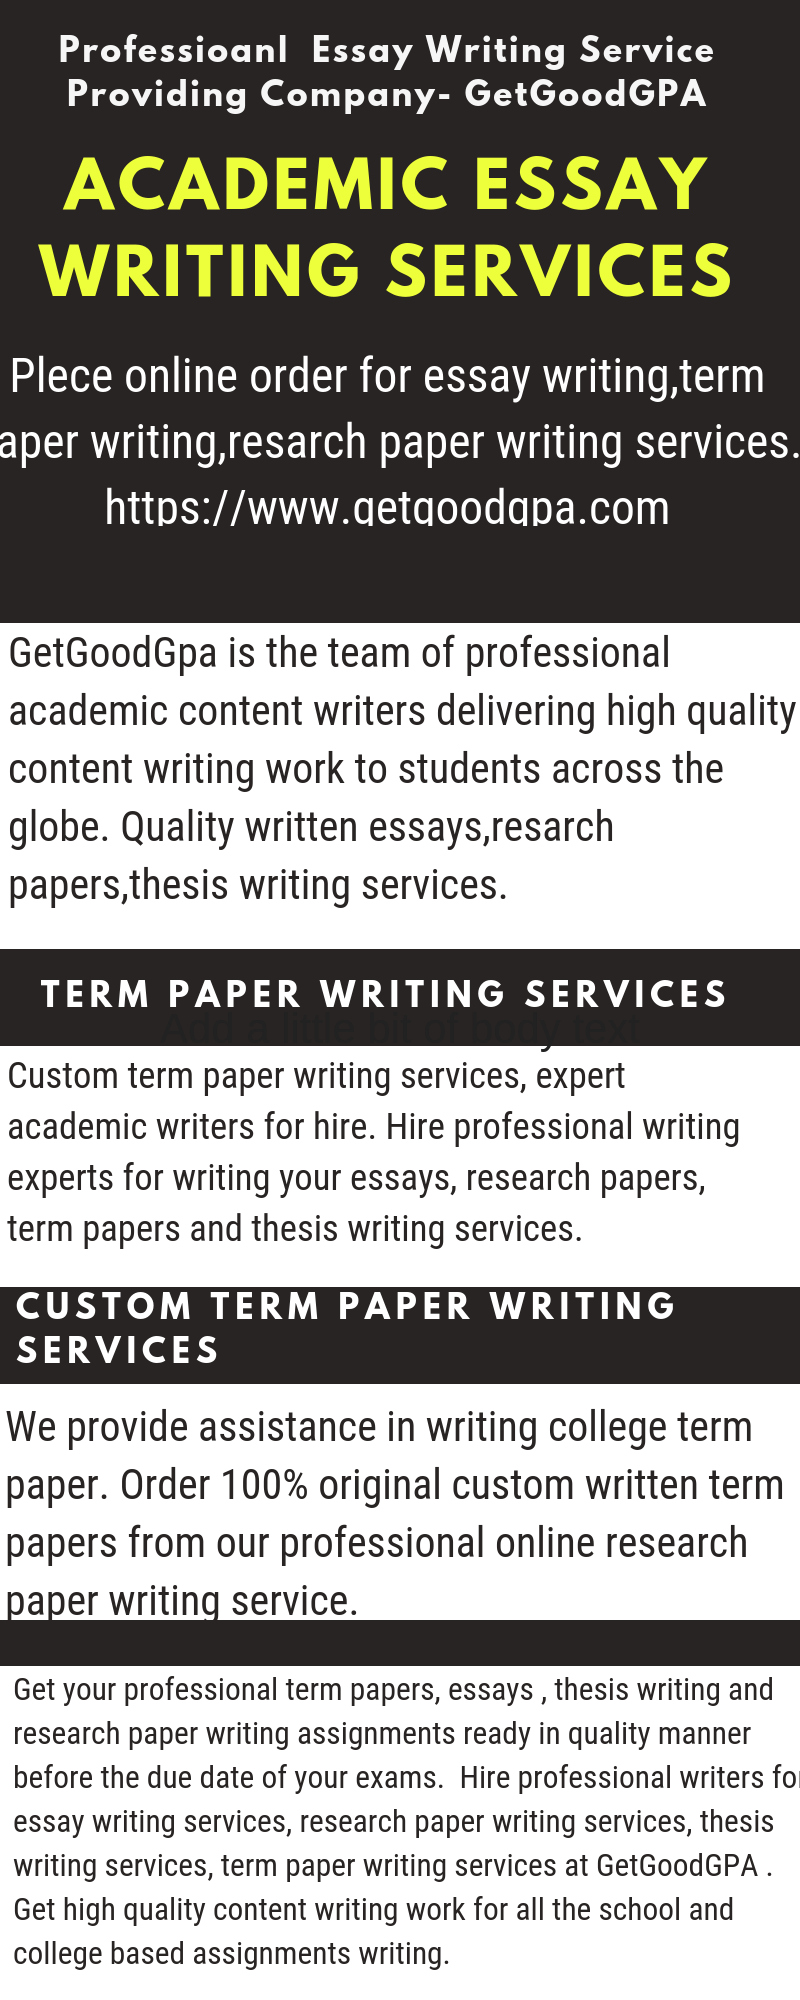 014 Research Paper Custom Writing Service Awesome Term Services Full